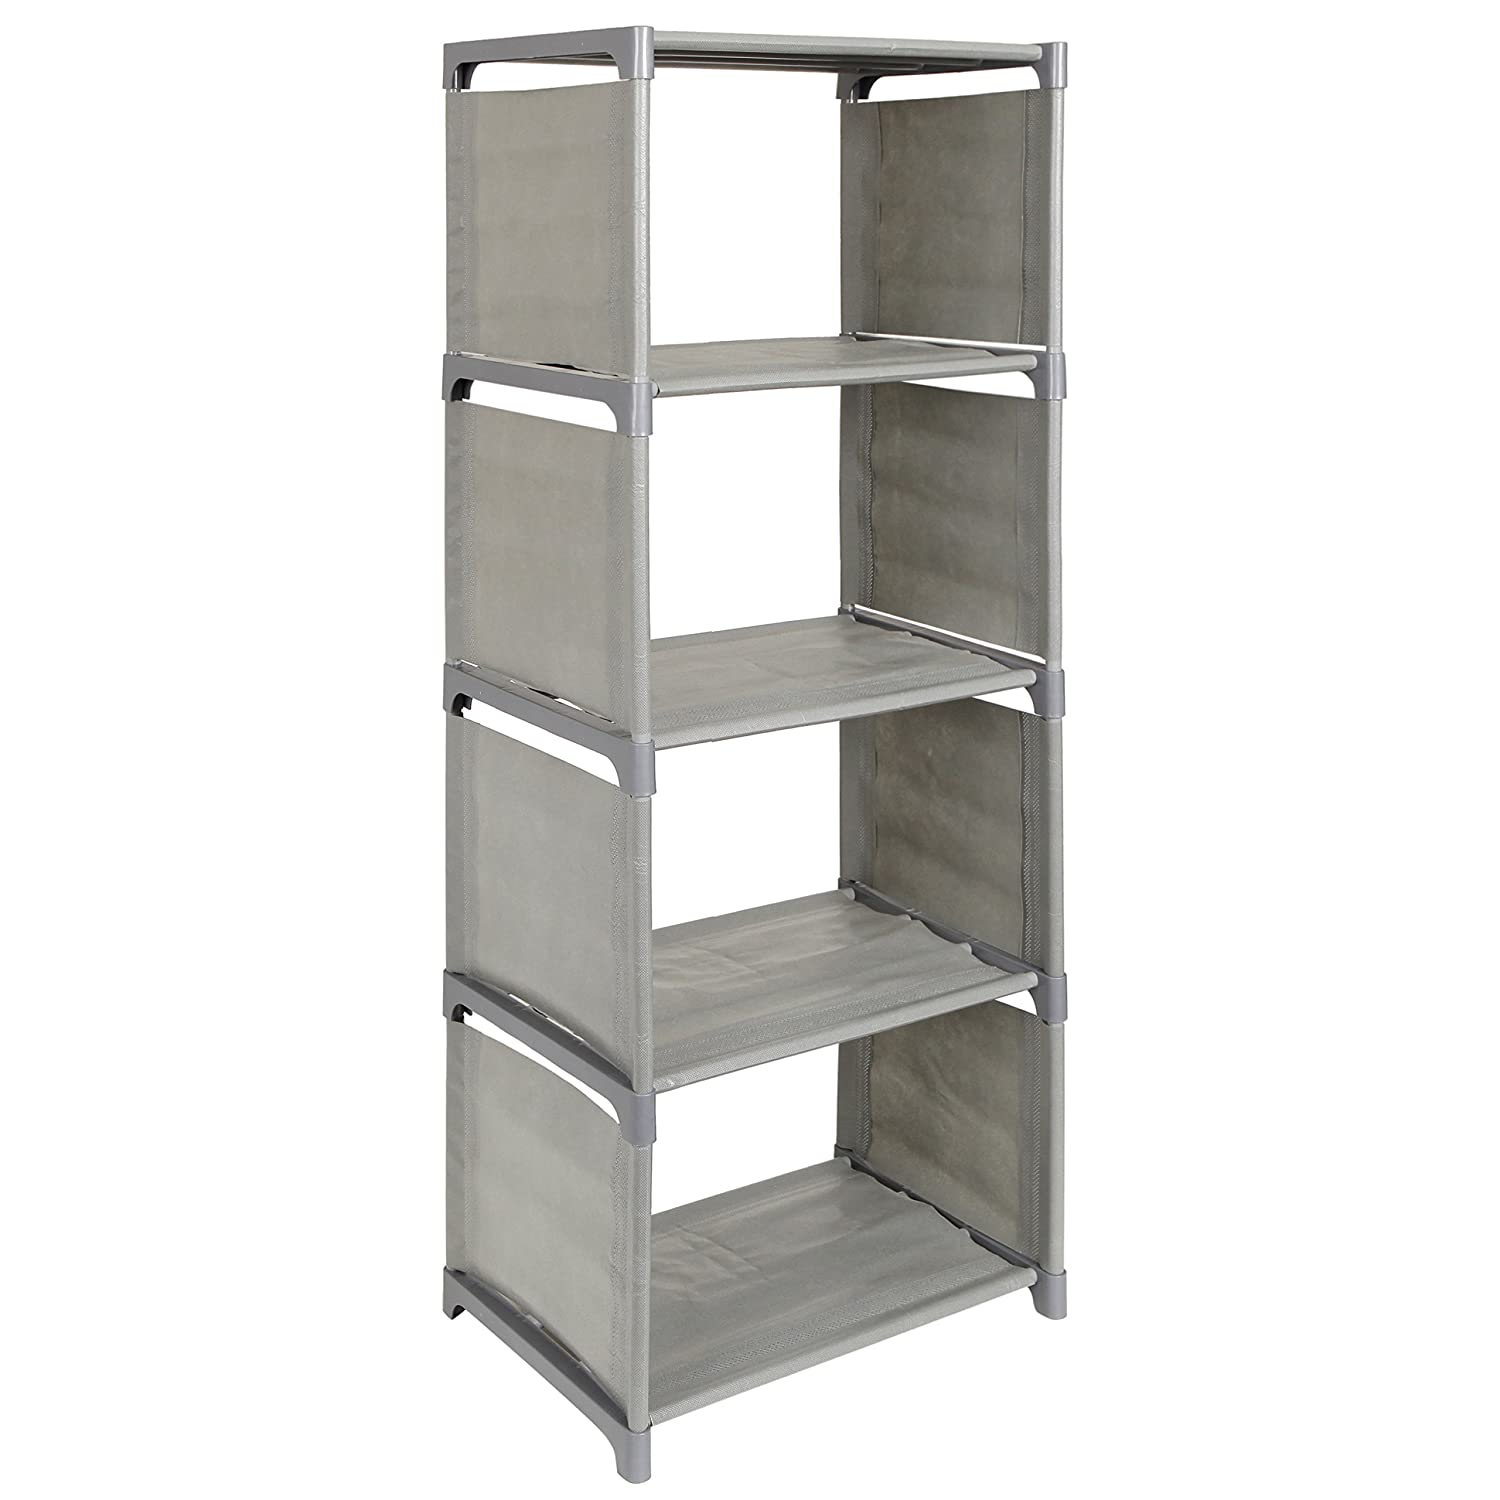 Dorm Plastic Fabric 5 Shelf Bookcase Storage Organizer